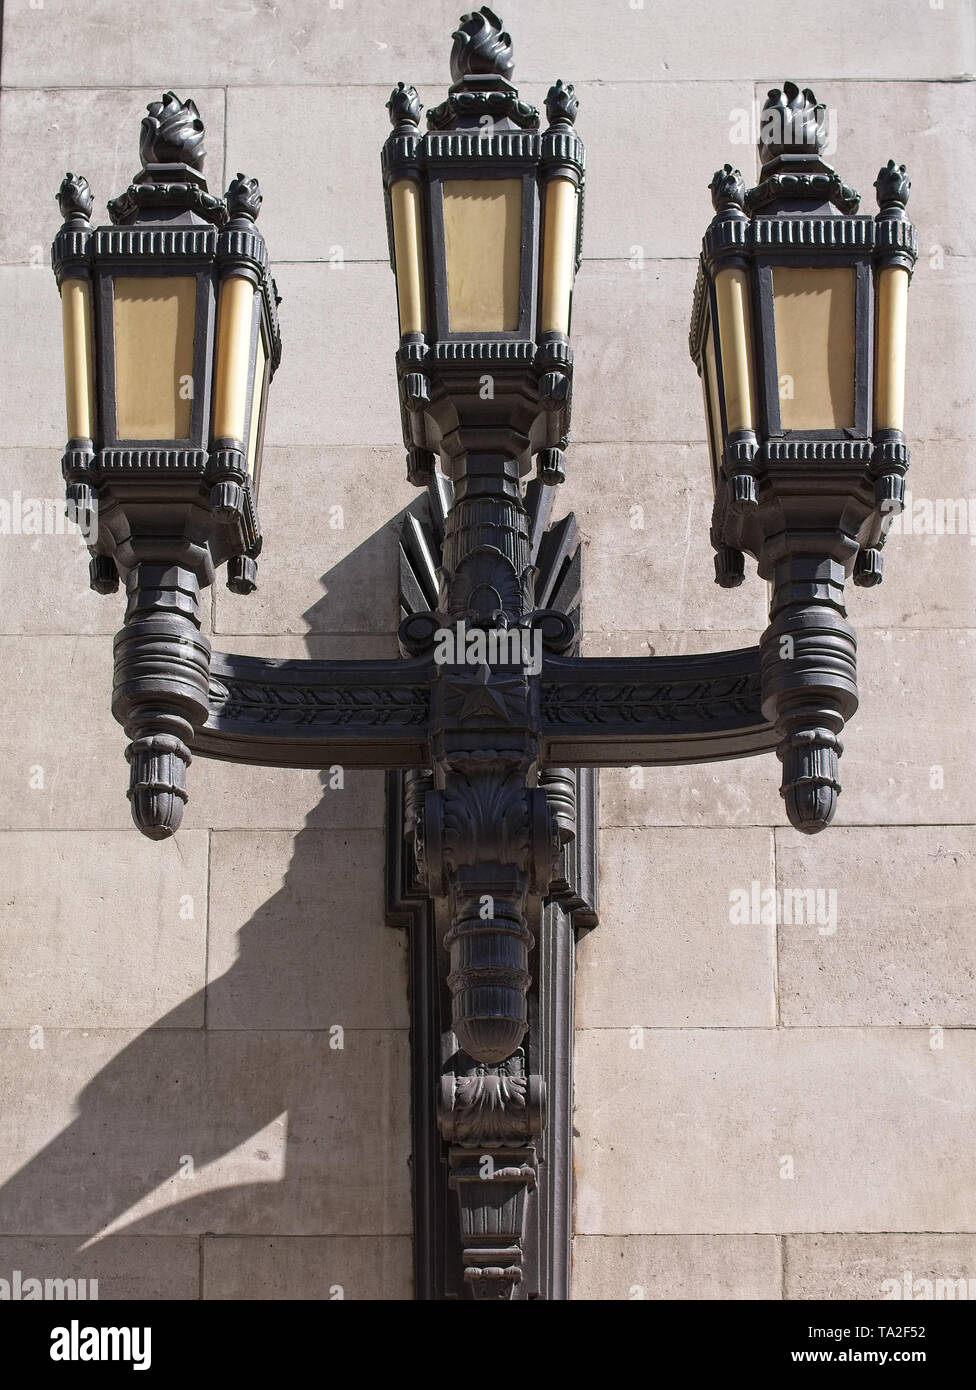 Black cast iron lanterns on the wall of the Freemason Hall, the United Grand Lodge and Supreme Grand Chapter of Royal Arch Masons of England. - Stock Image